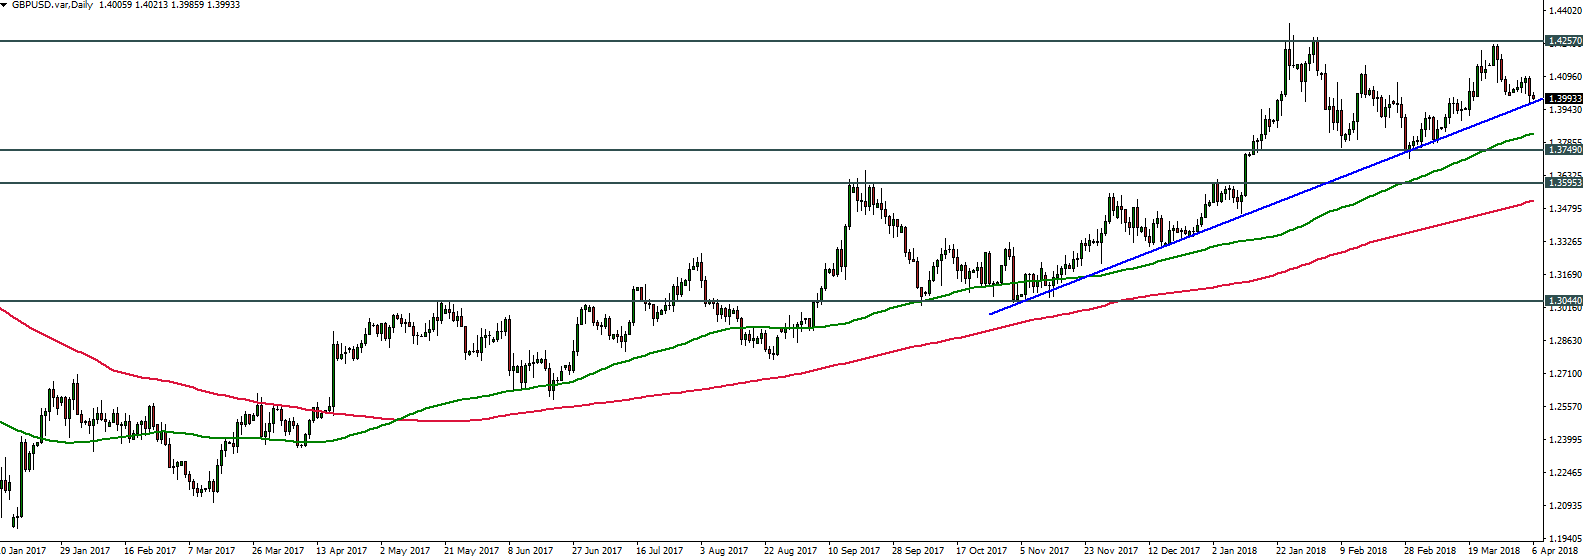 GBPUSD - 06.04.2018 - Daily